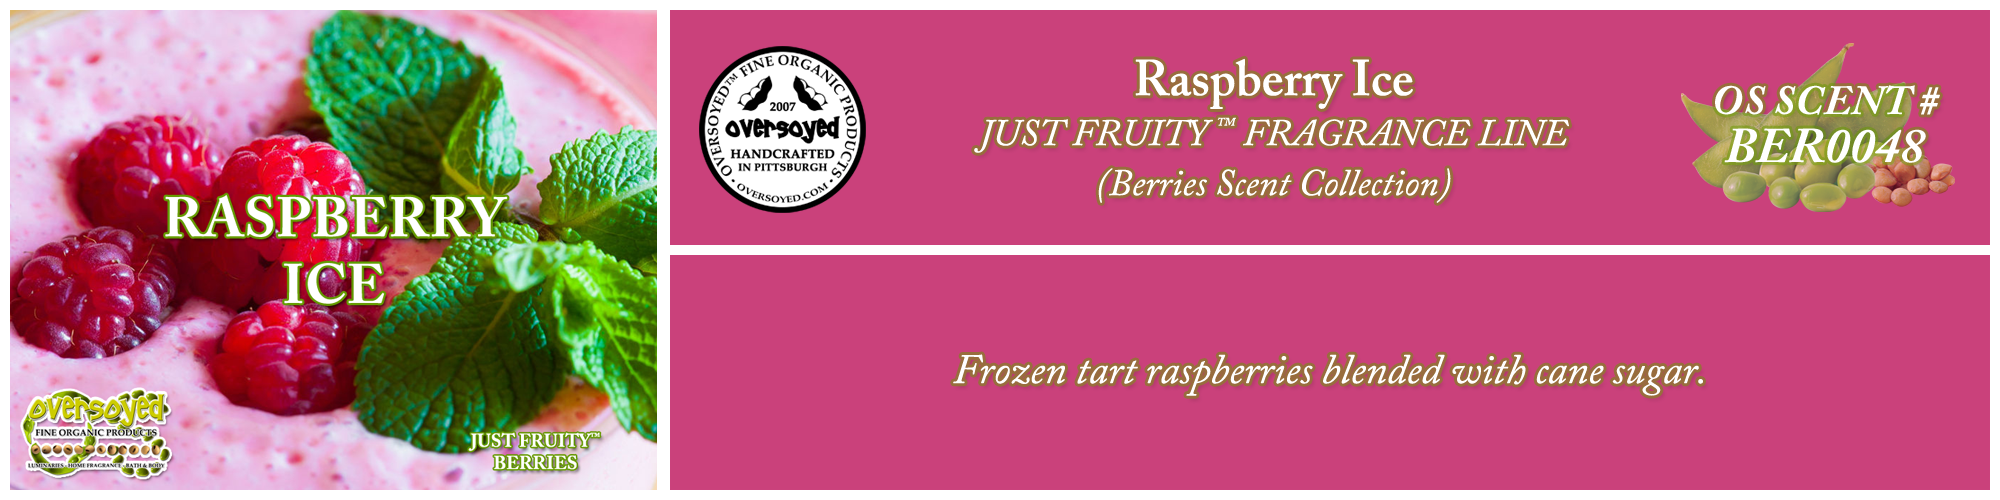 Raspberry Ice Handcrafted Products Collection